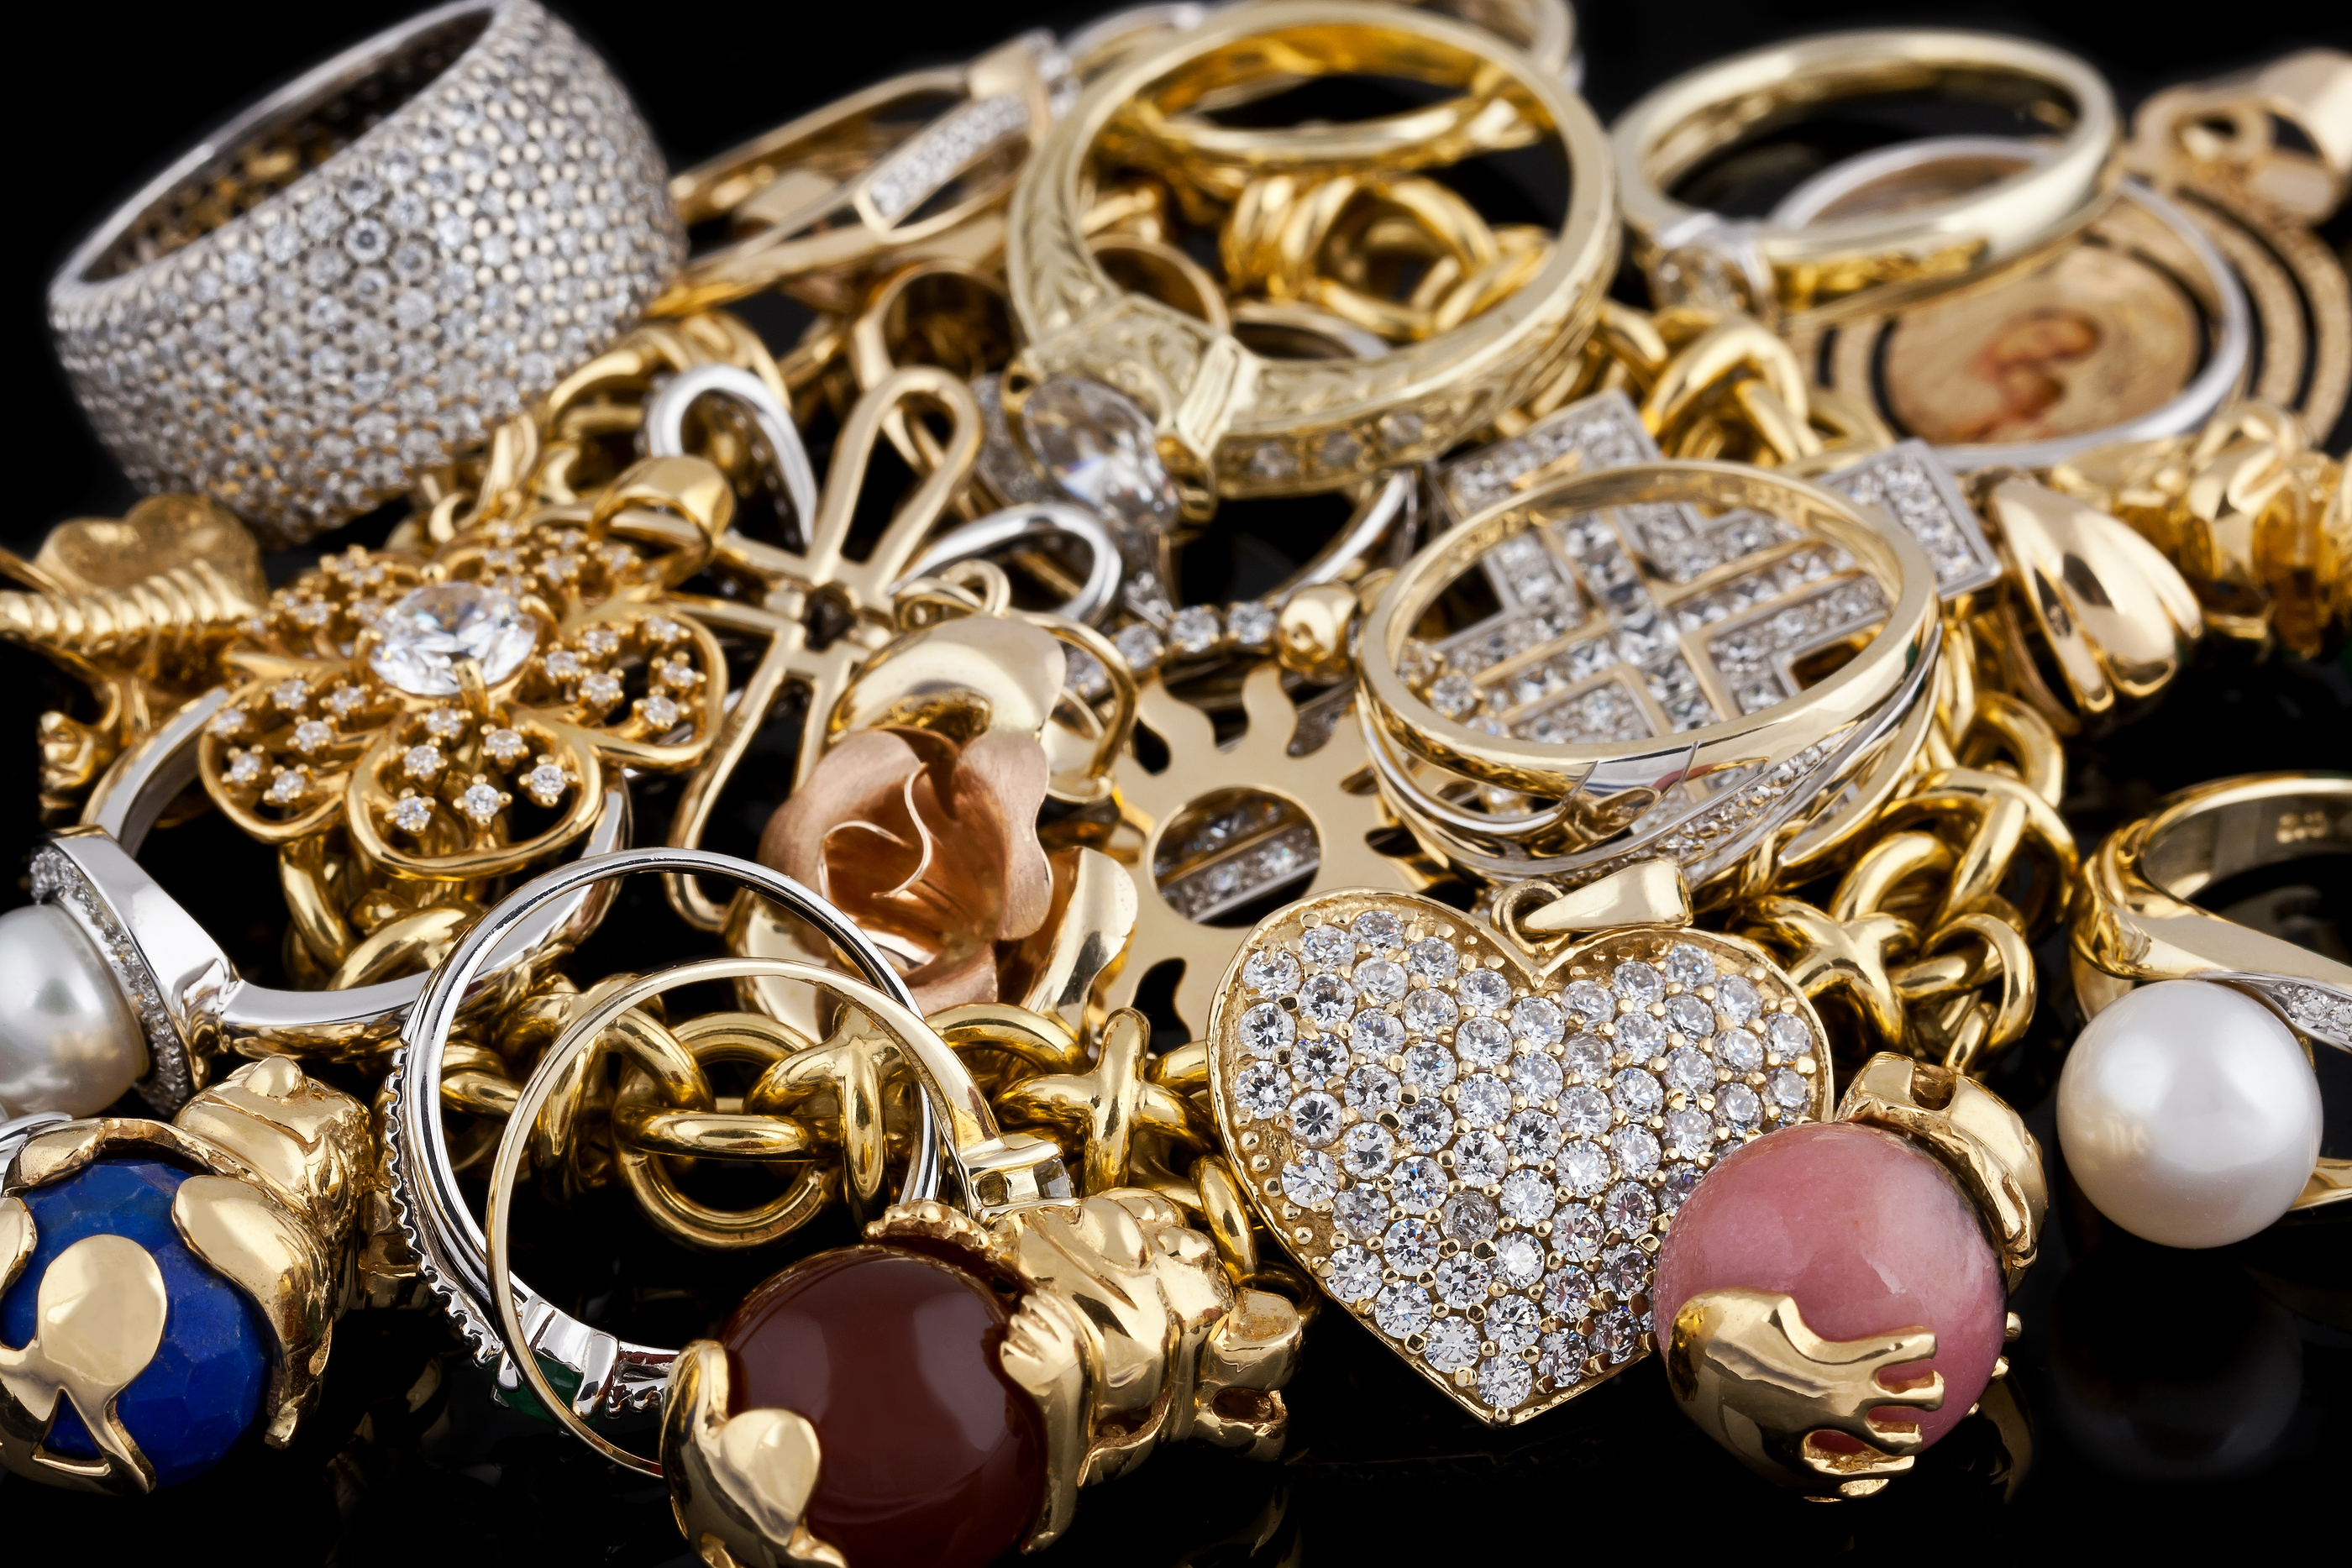 SELLING YOUR JEWELRY